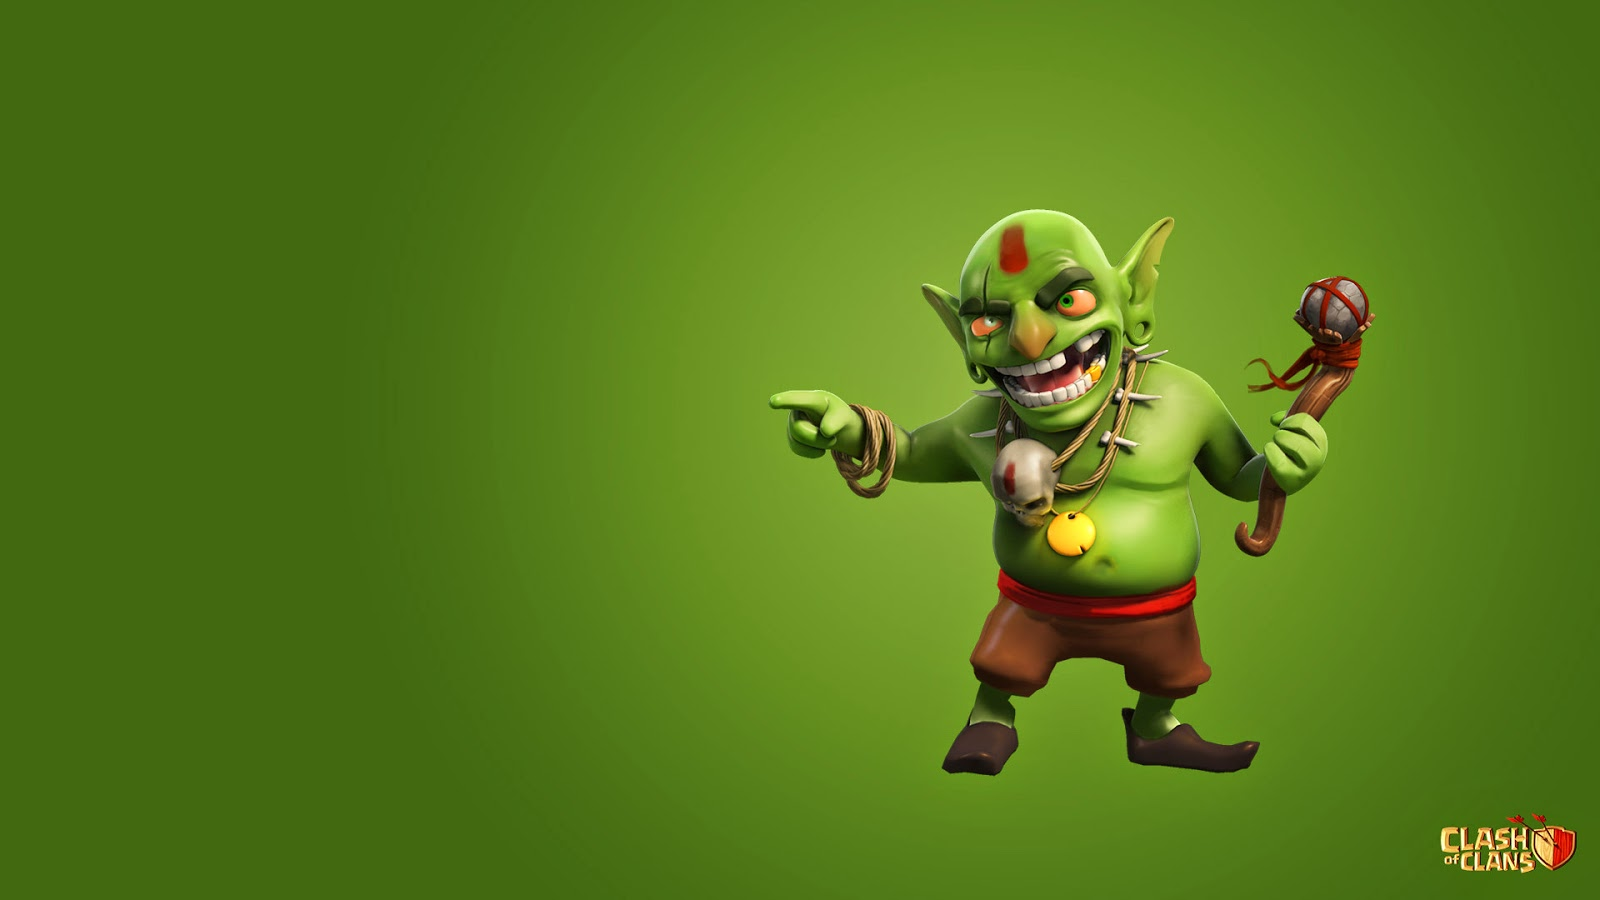 Goblin – Clash of Clans HD Wallpaper